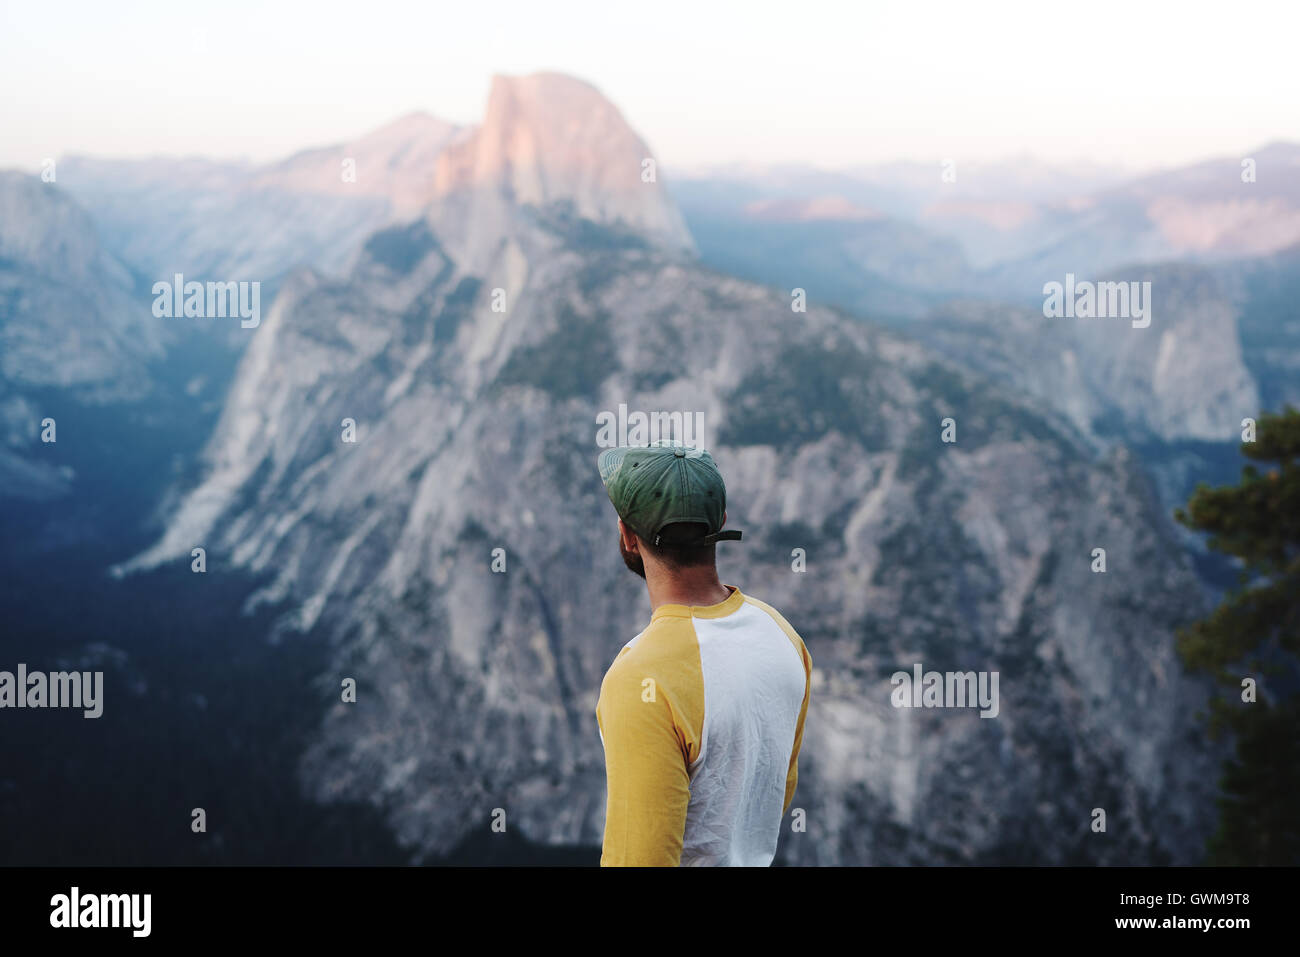 A hiker views Half Dome in California's Yosemite National Park - Stock Image